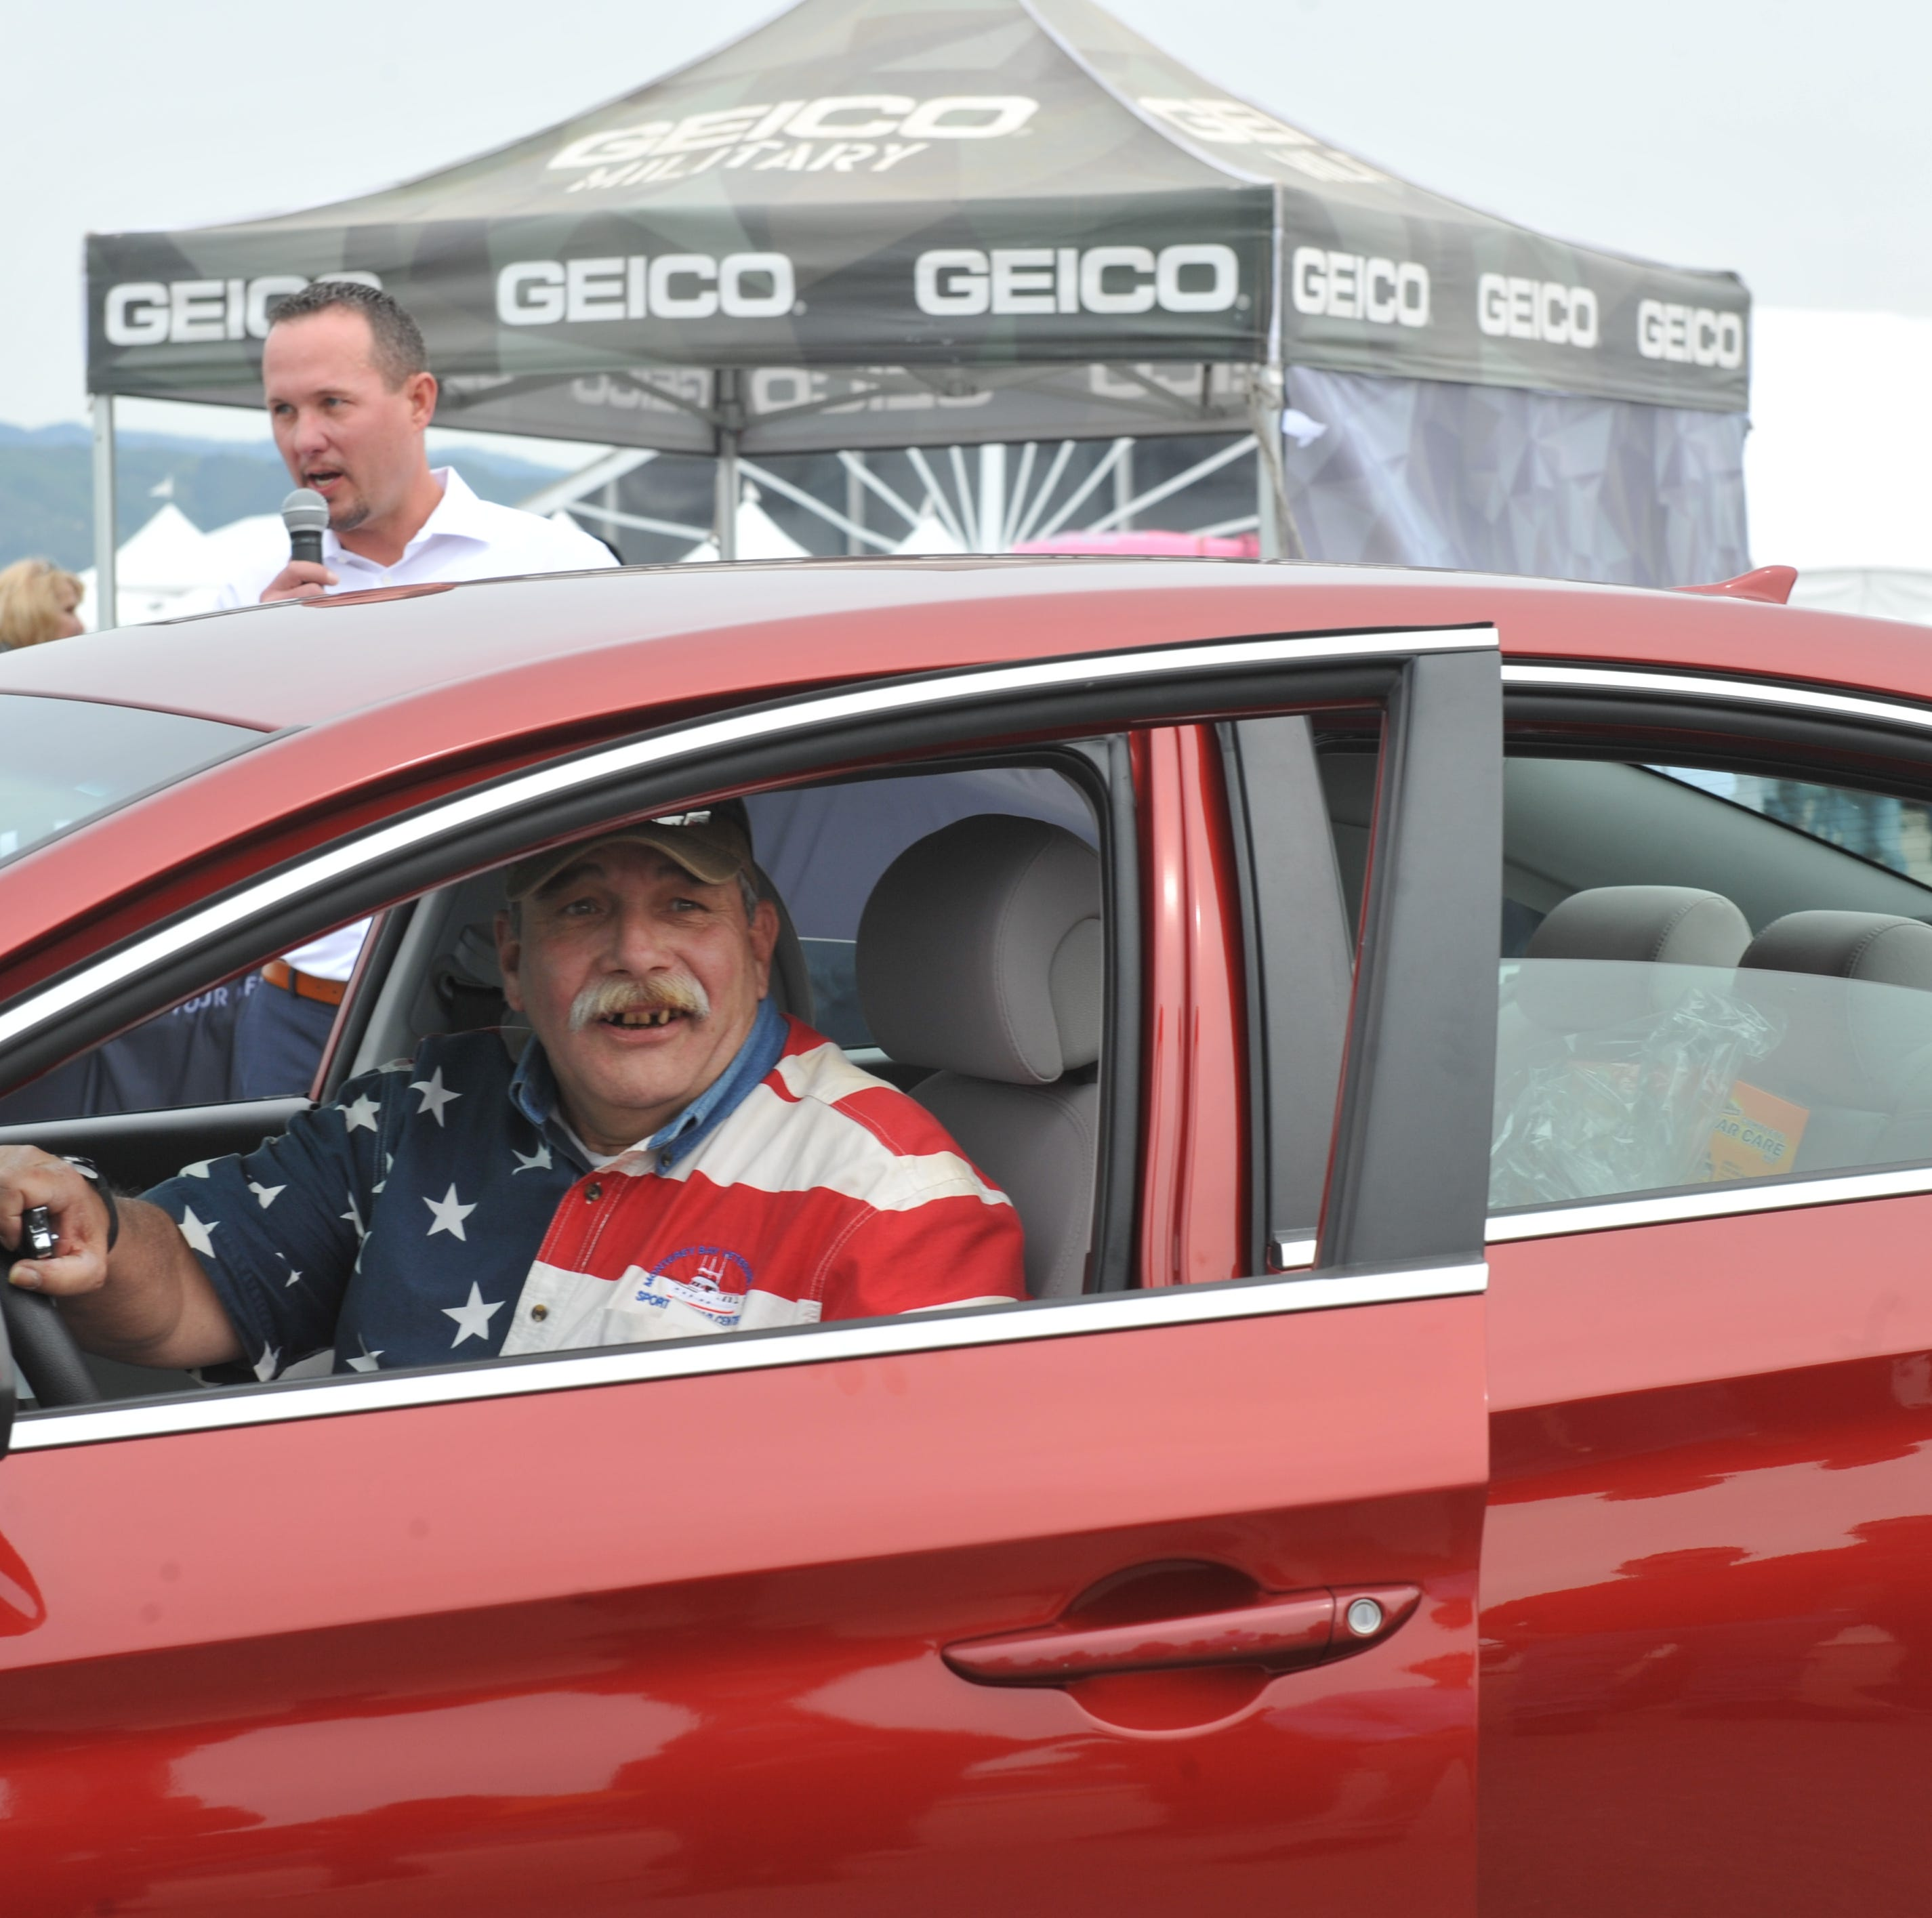 Prunedale U.S. Army veteran receives donated car at Salinas airshow